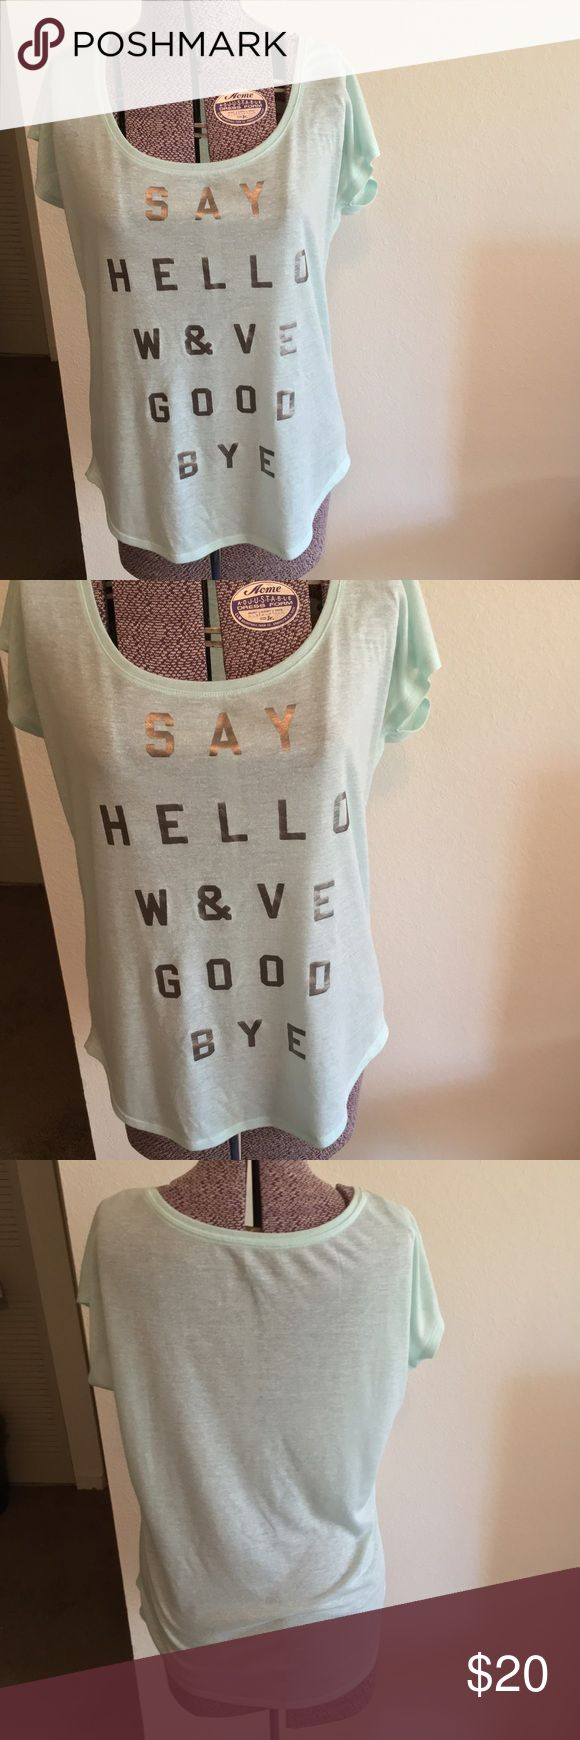 """American Eagle  """"Say Hello Wave Goodbye"""" Tee Adorable semi-sheer American Eagle Outfitters seafoam green tee! """"Say Hello Wave Goodbye"""" is the saying on the shirt. Perfect Condition shirt. Size Medium. 80% Polyester, 20% Linen. 22"""" armpit to armpit (laying flat), 25"""" shoulder to hem. American Eagle Outfitters Tops Tees - Short Sleeve"""